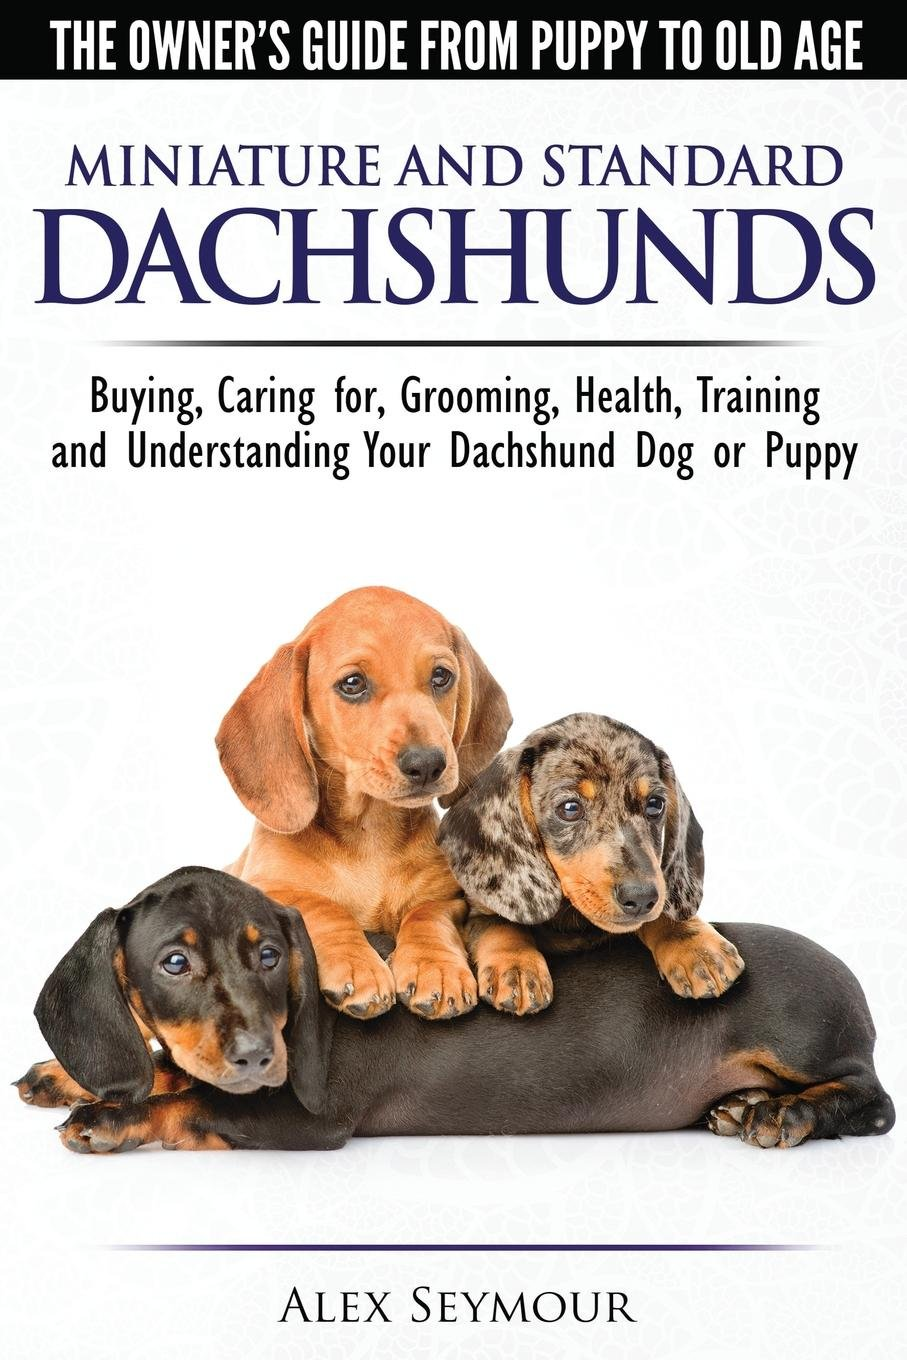 Dachshunds - The Owner's Guide From Puppy To Old Age - Choosing, Caring for, Grooming, Health, Training and Understanding Your Standard or Miniature Dachshund Dog